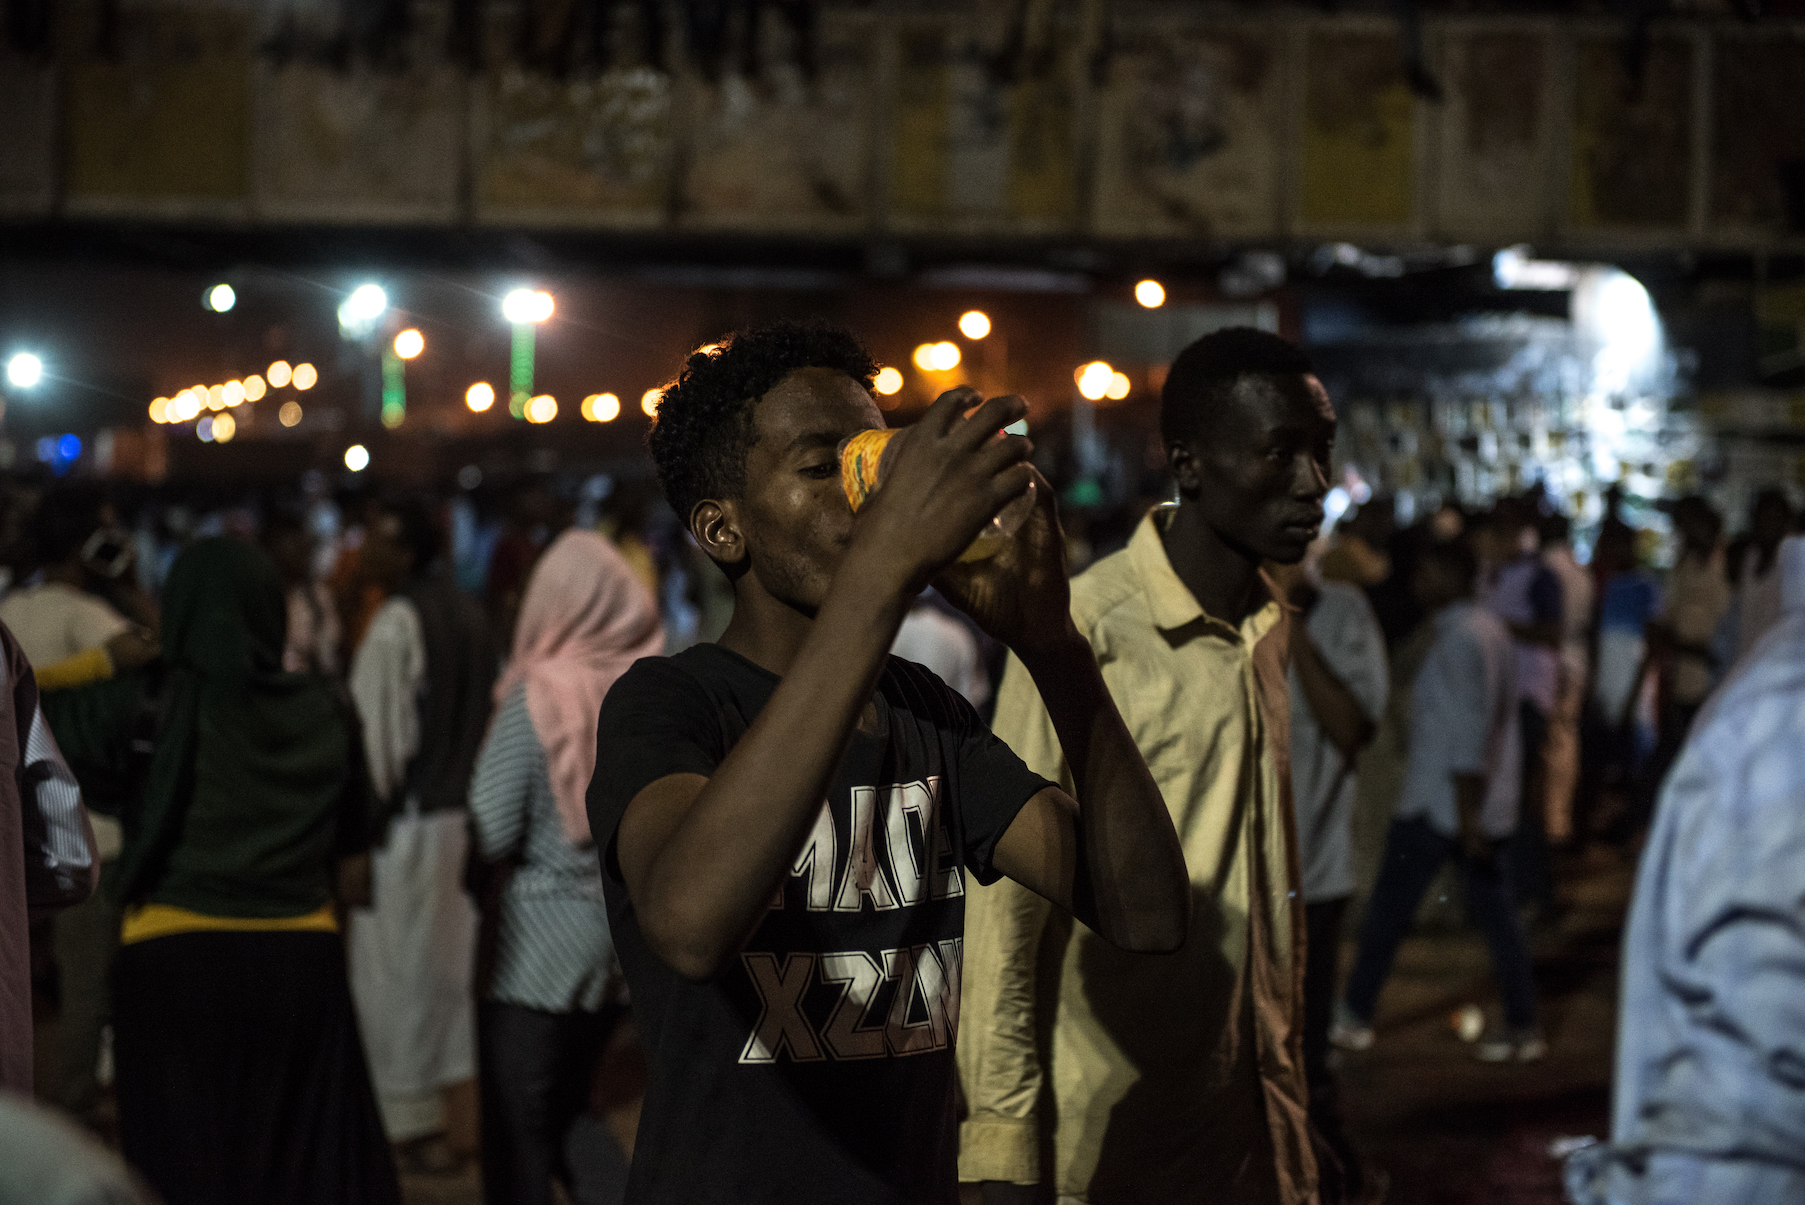 A young man drinks juice to hydrate himself on the first night of Ramadan after iftar on May 6, 2019, at the sit-in in Khartoum, Sudan.